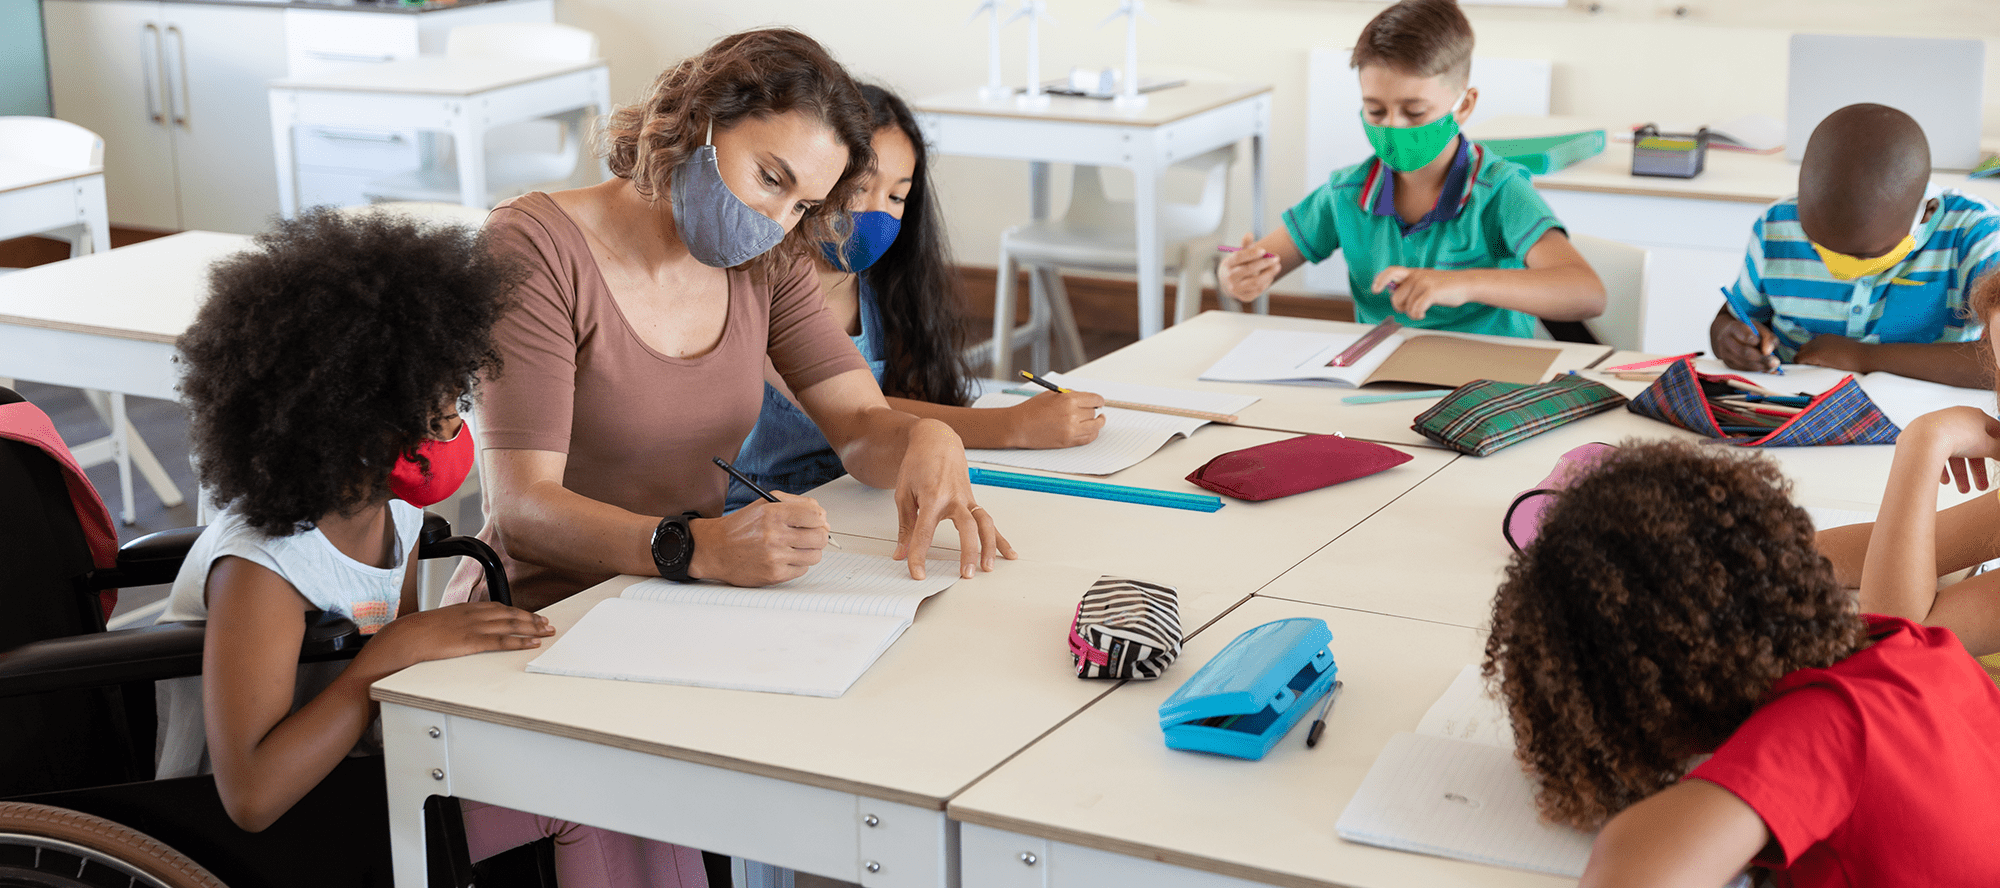 Teacher sitting at a table with students, all wearing masks.